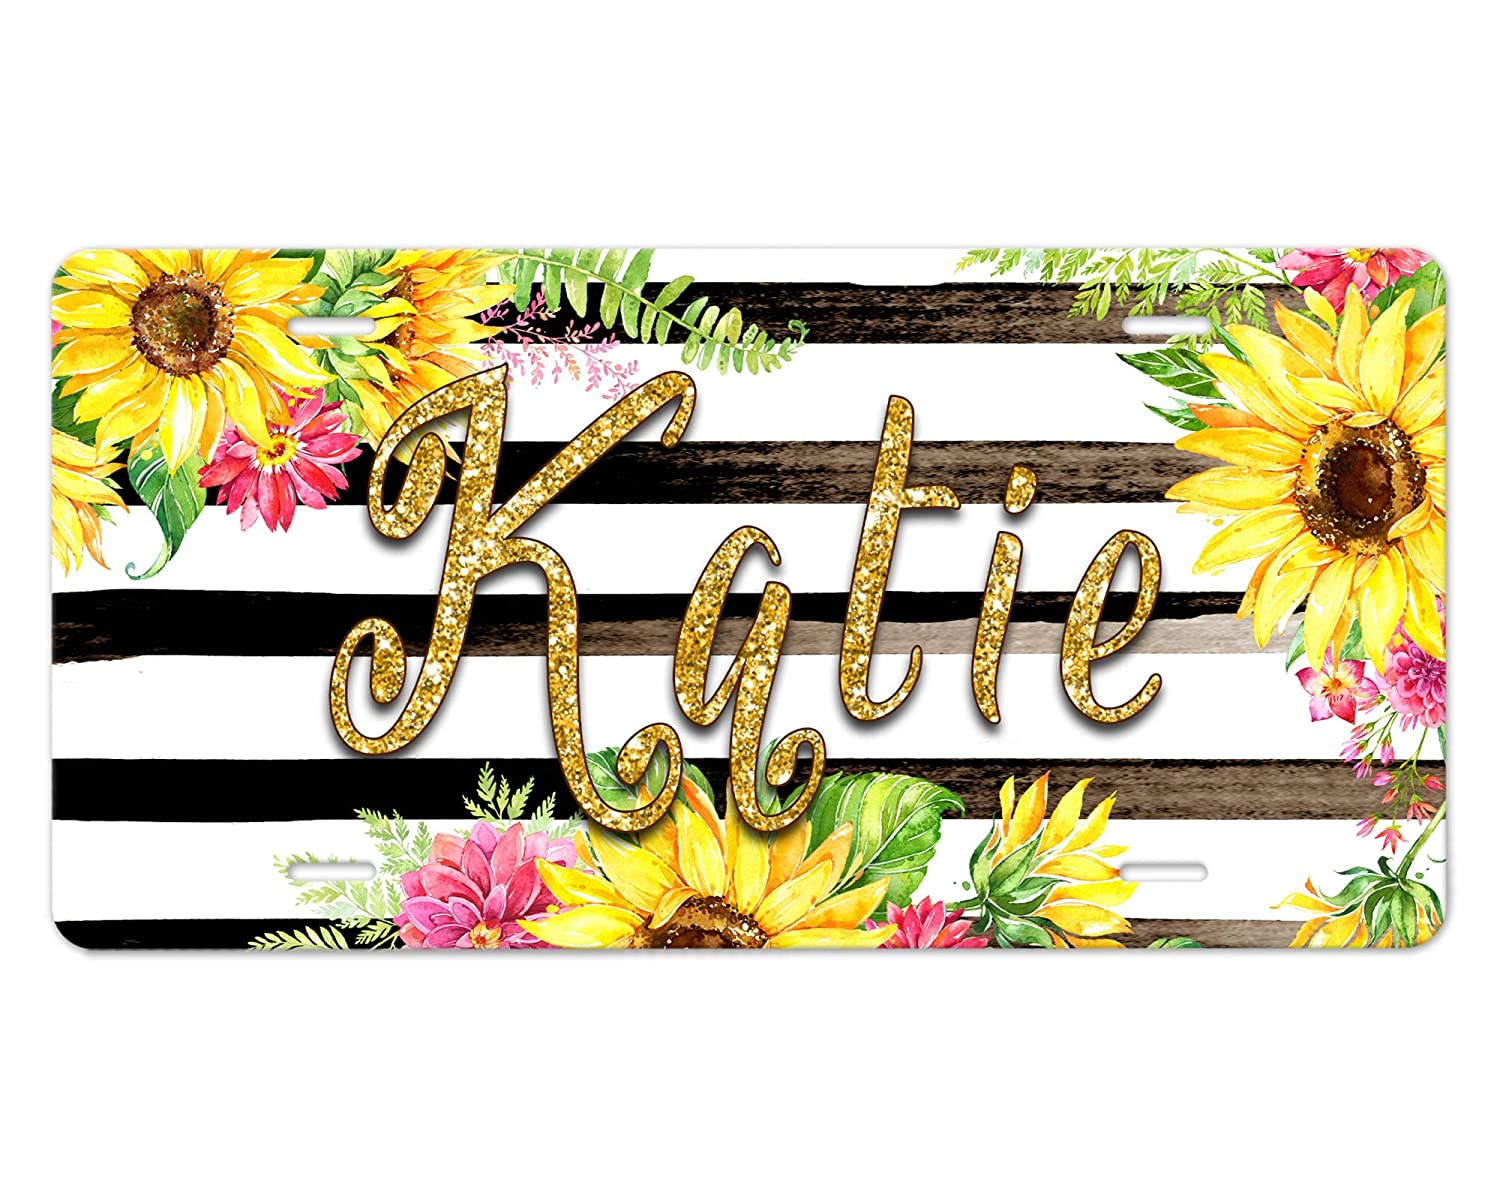 Made-to-Order Custom Front Car Tag Floral Black and White Striped Design